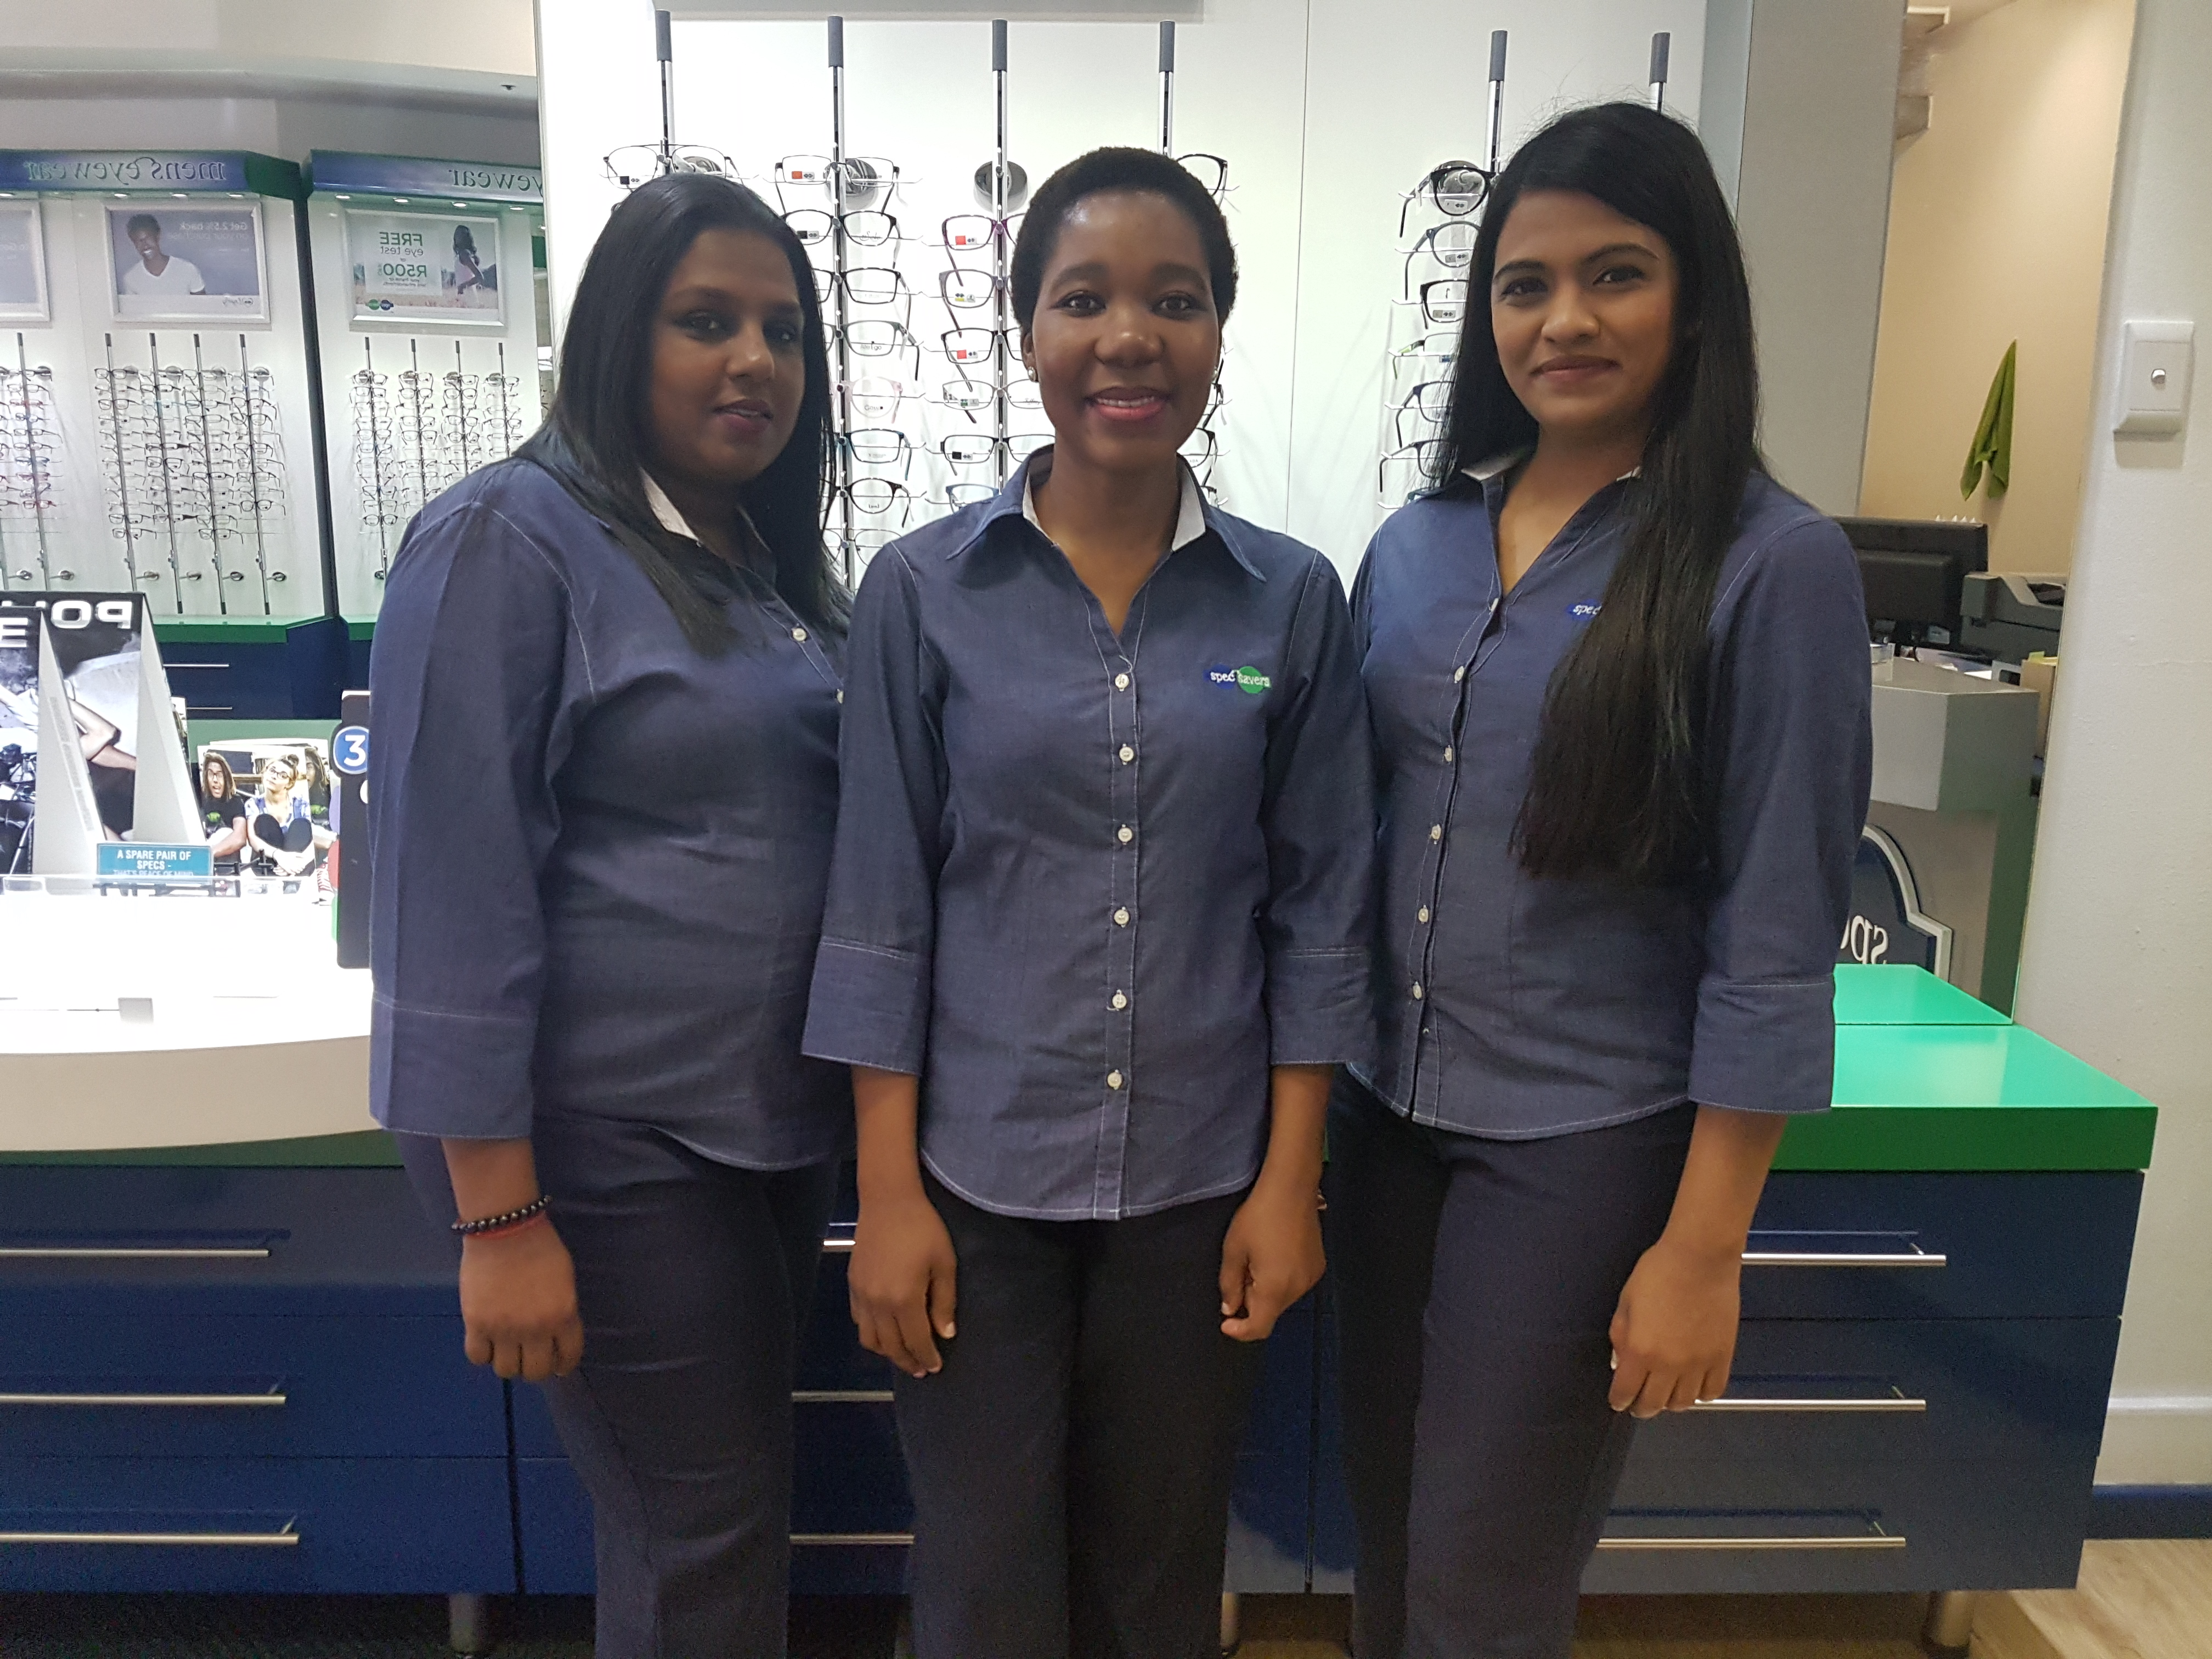 From left: Frontliners - Ashika Ramdass, Fortunate Mdima and on the right: Manager - Prenisha Inderjith